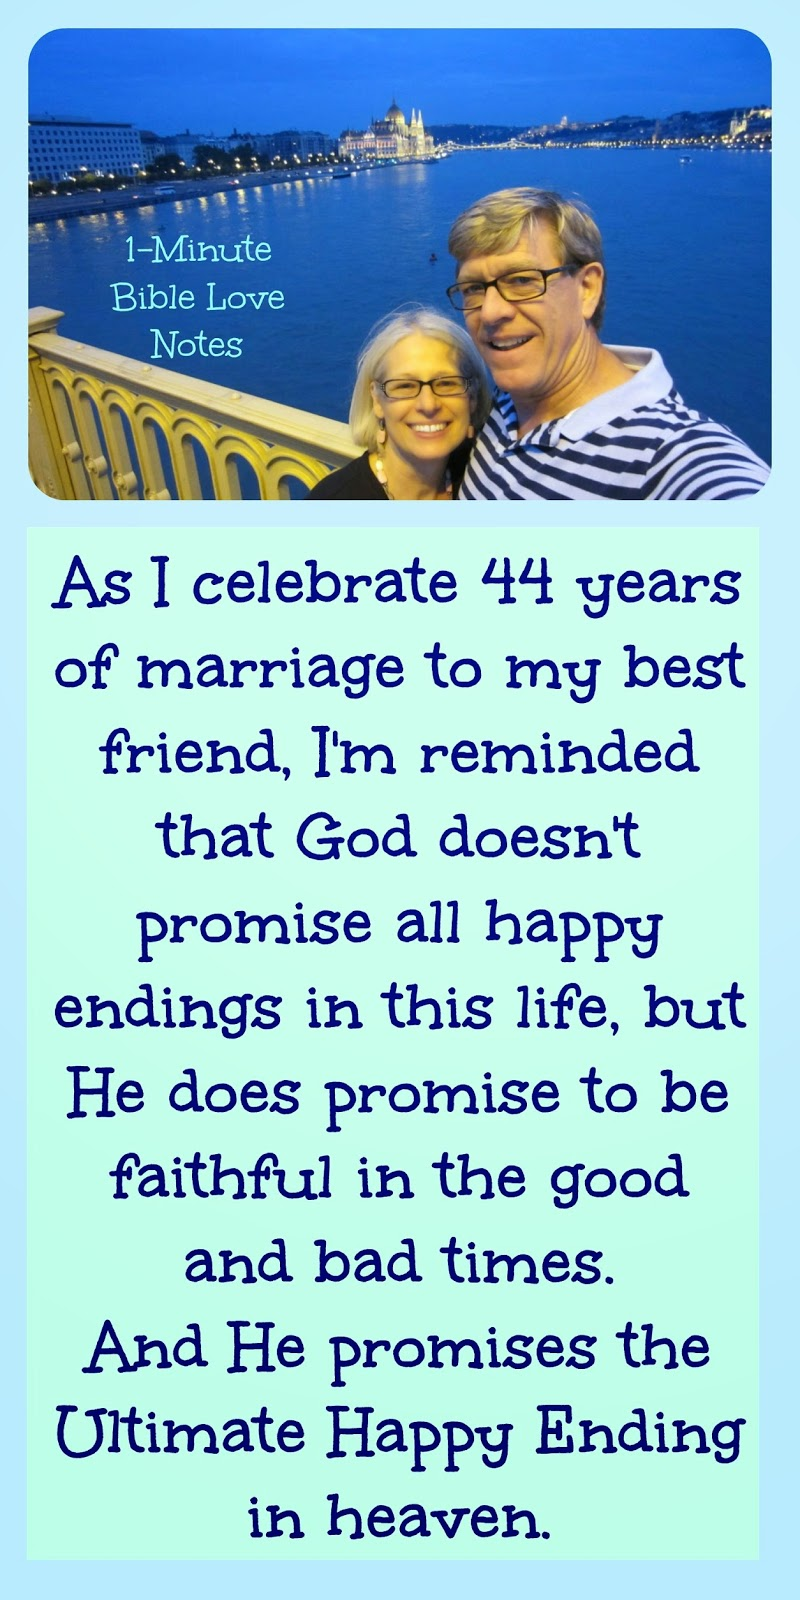 God's faithfulness in good and bad events, marriage, pick-pocket